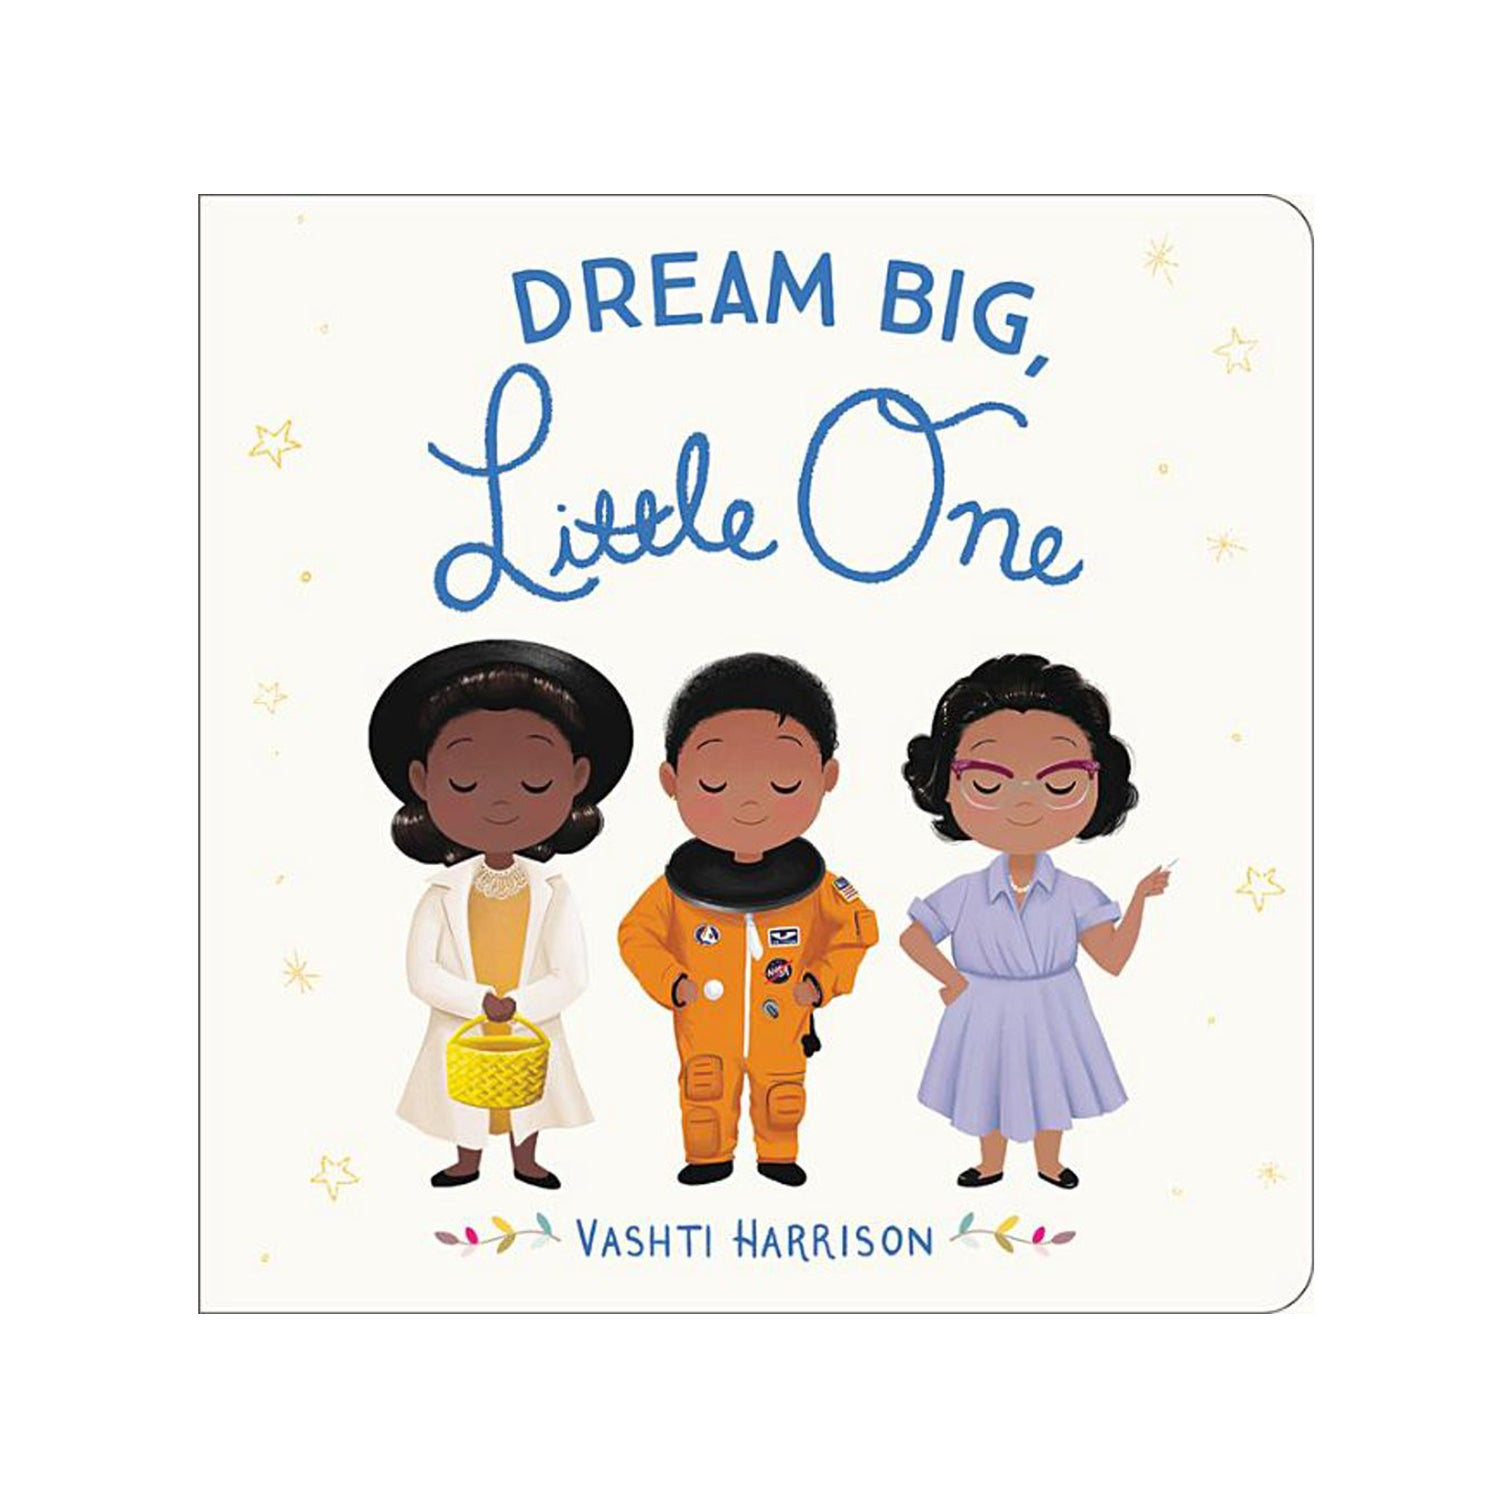 Dream Big, Little One by Vashti Harrison